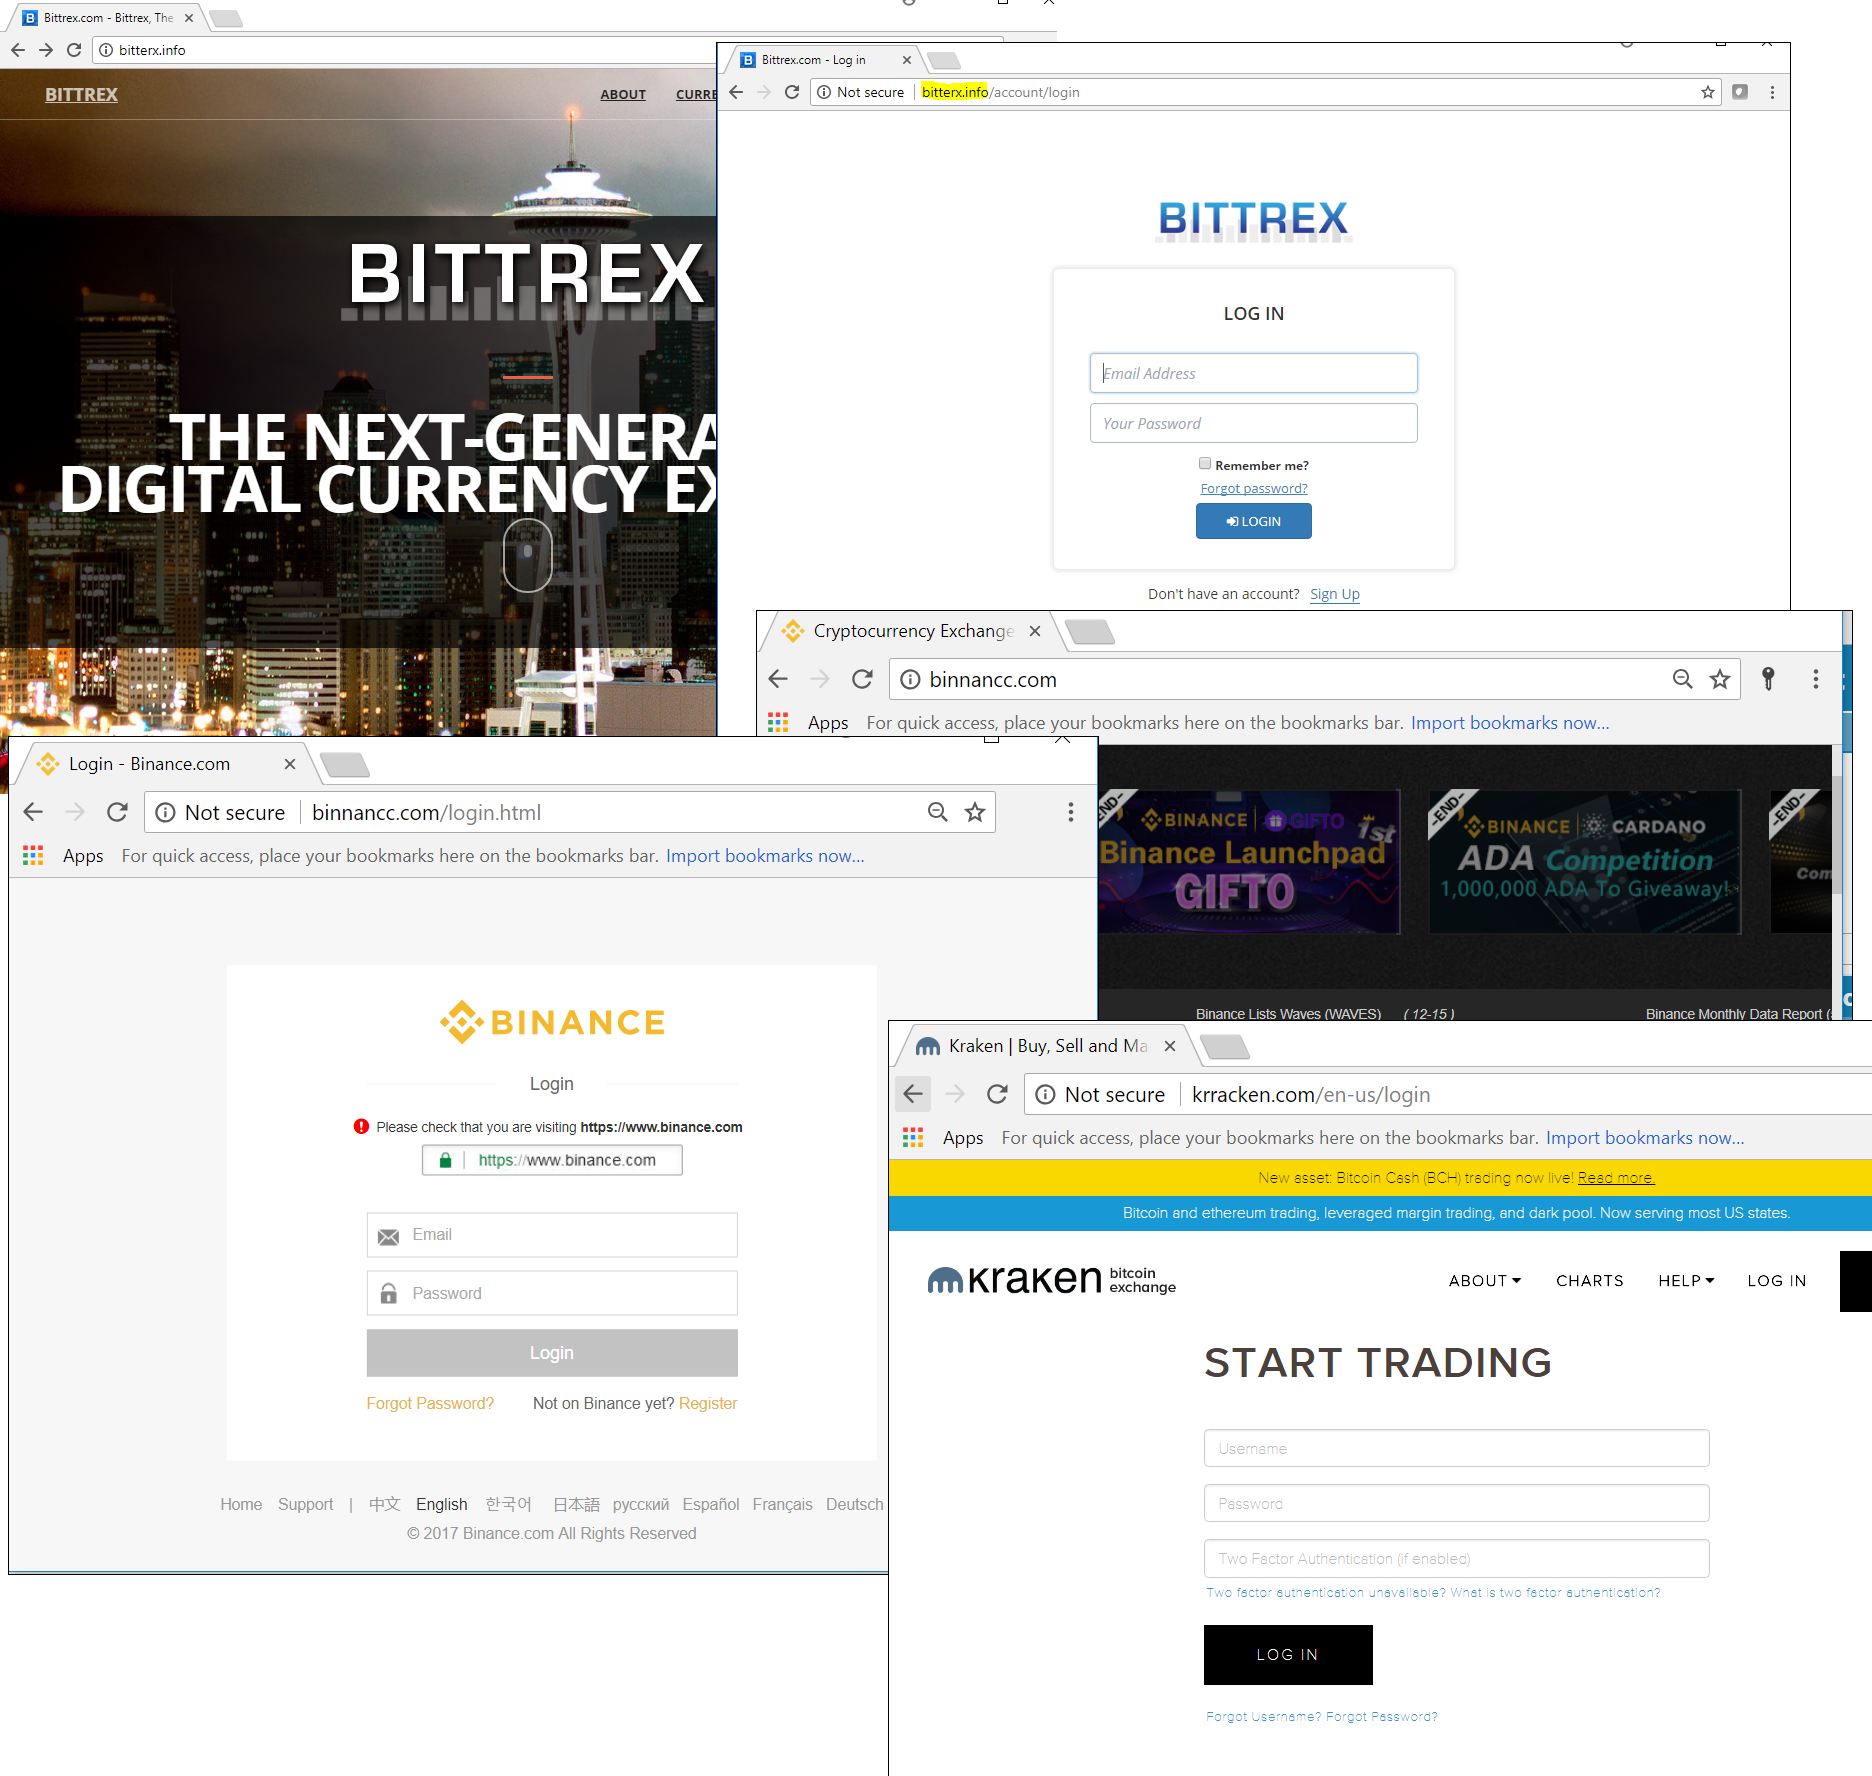 Examples of phishing pages imitating the authorization pages of popular crypto exchanges